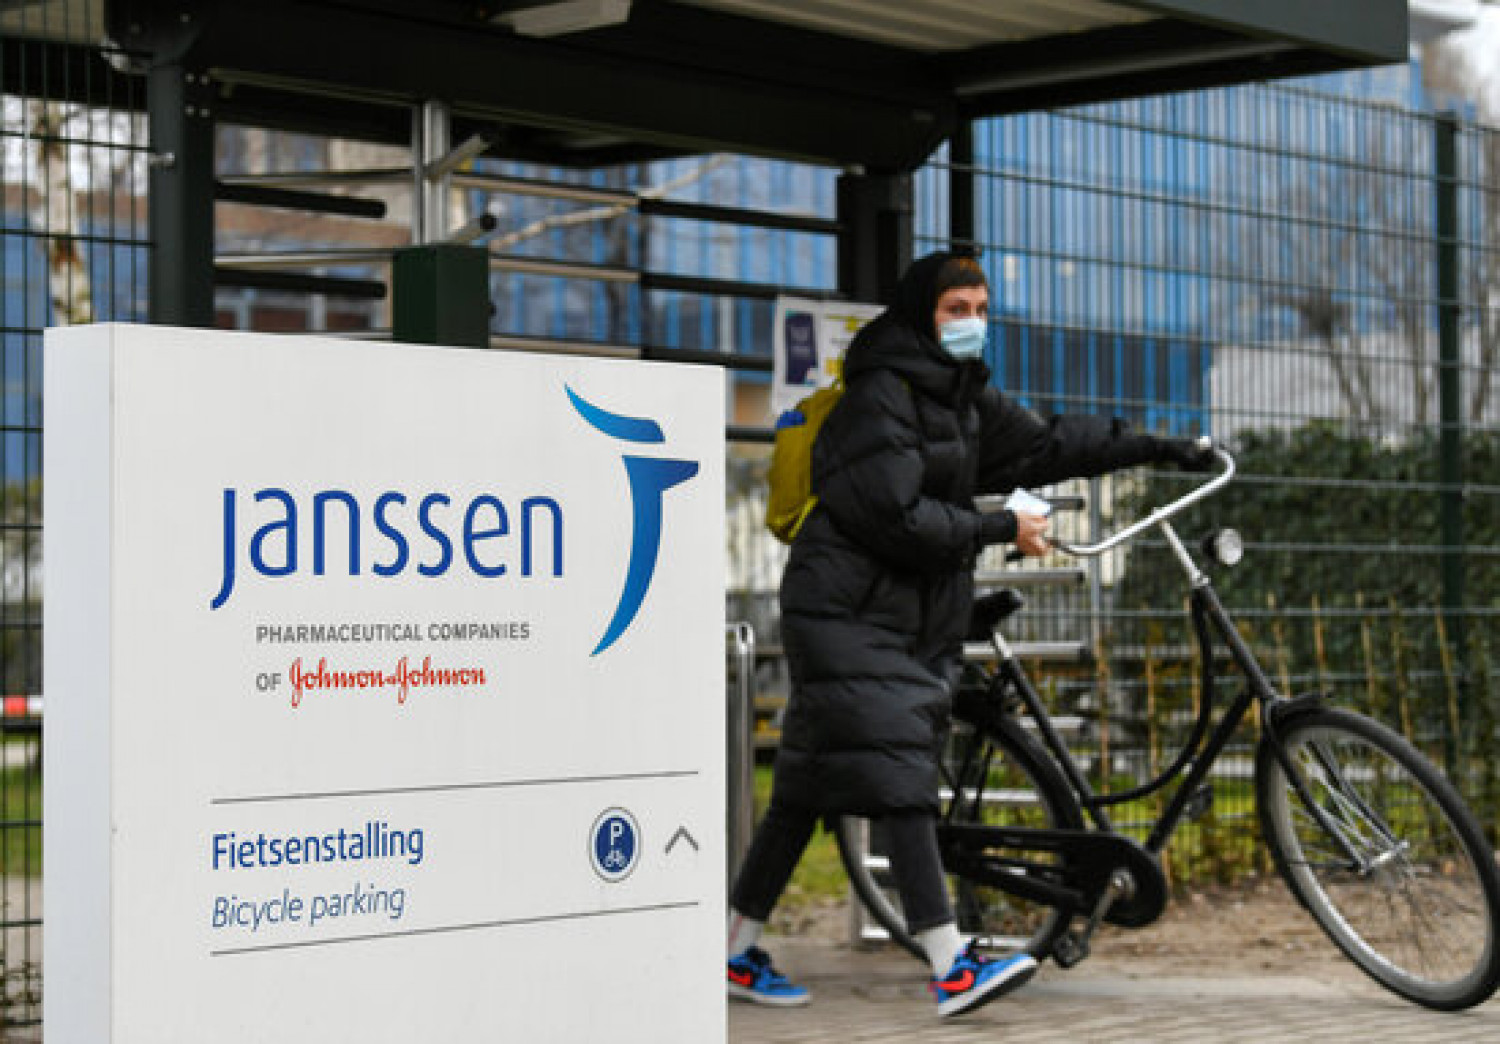 A woman walks with a bicycle outside a Janssen branch in the Netherlands (by REUTERS / Piroschka van de Wouw)